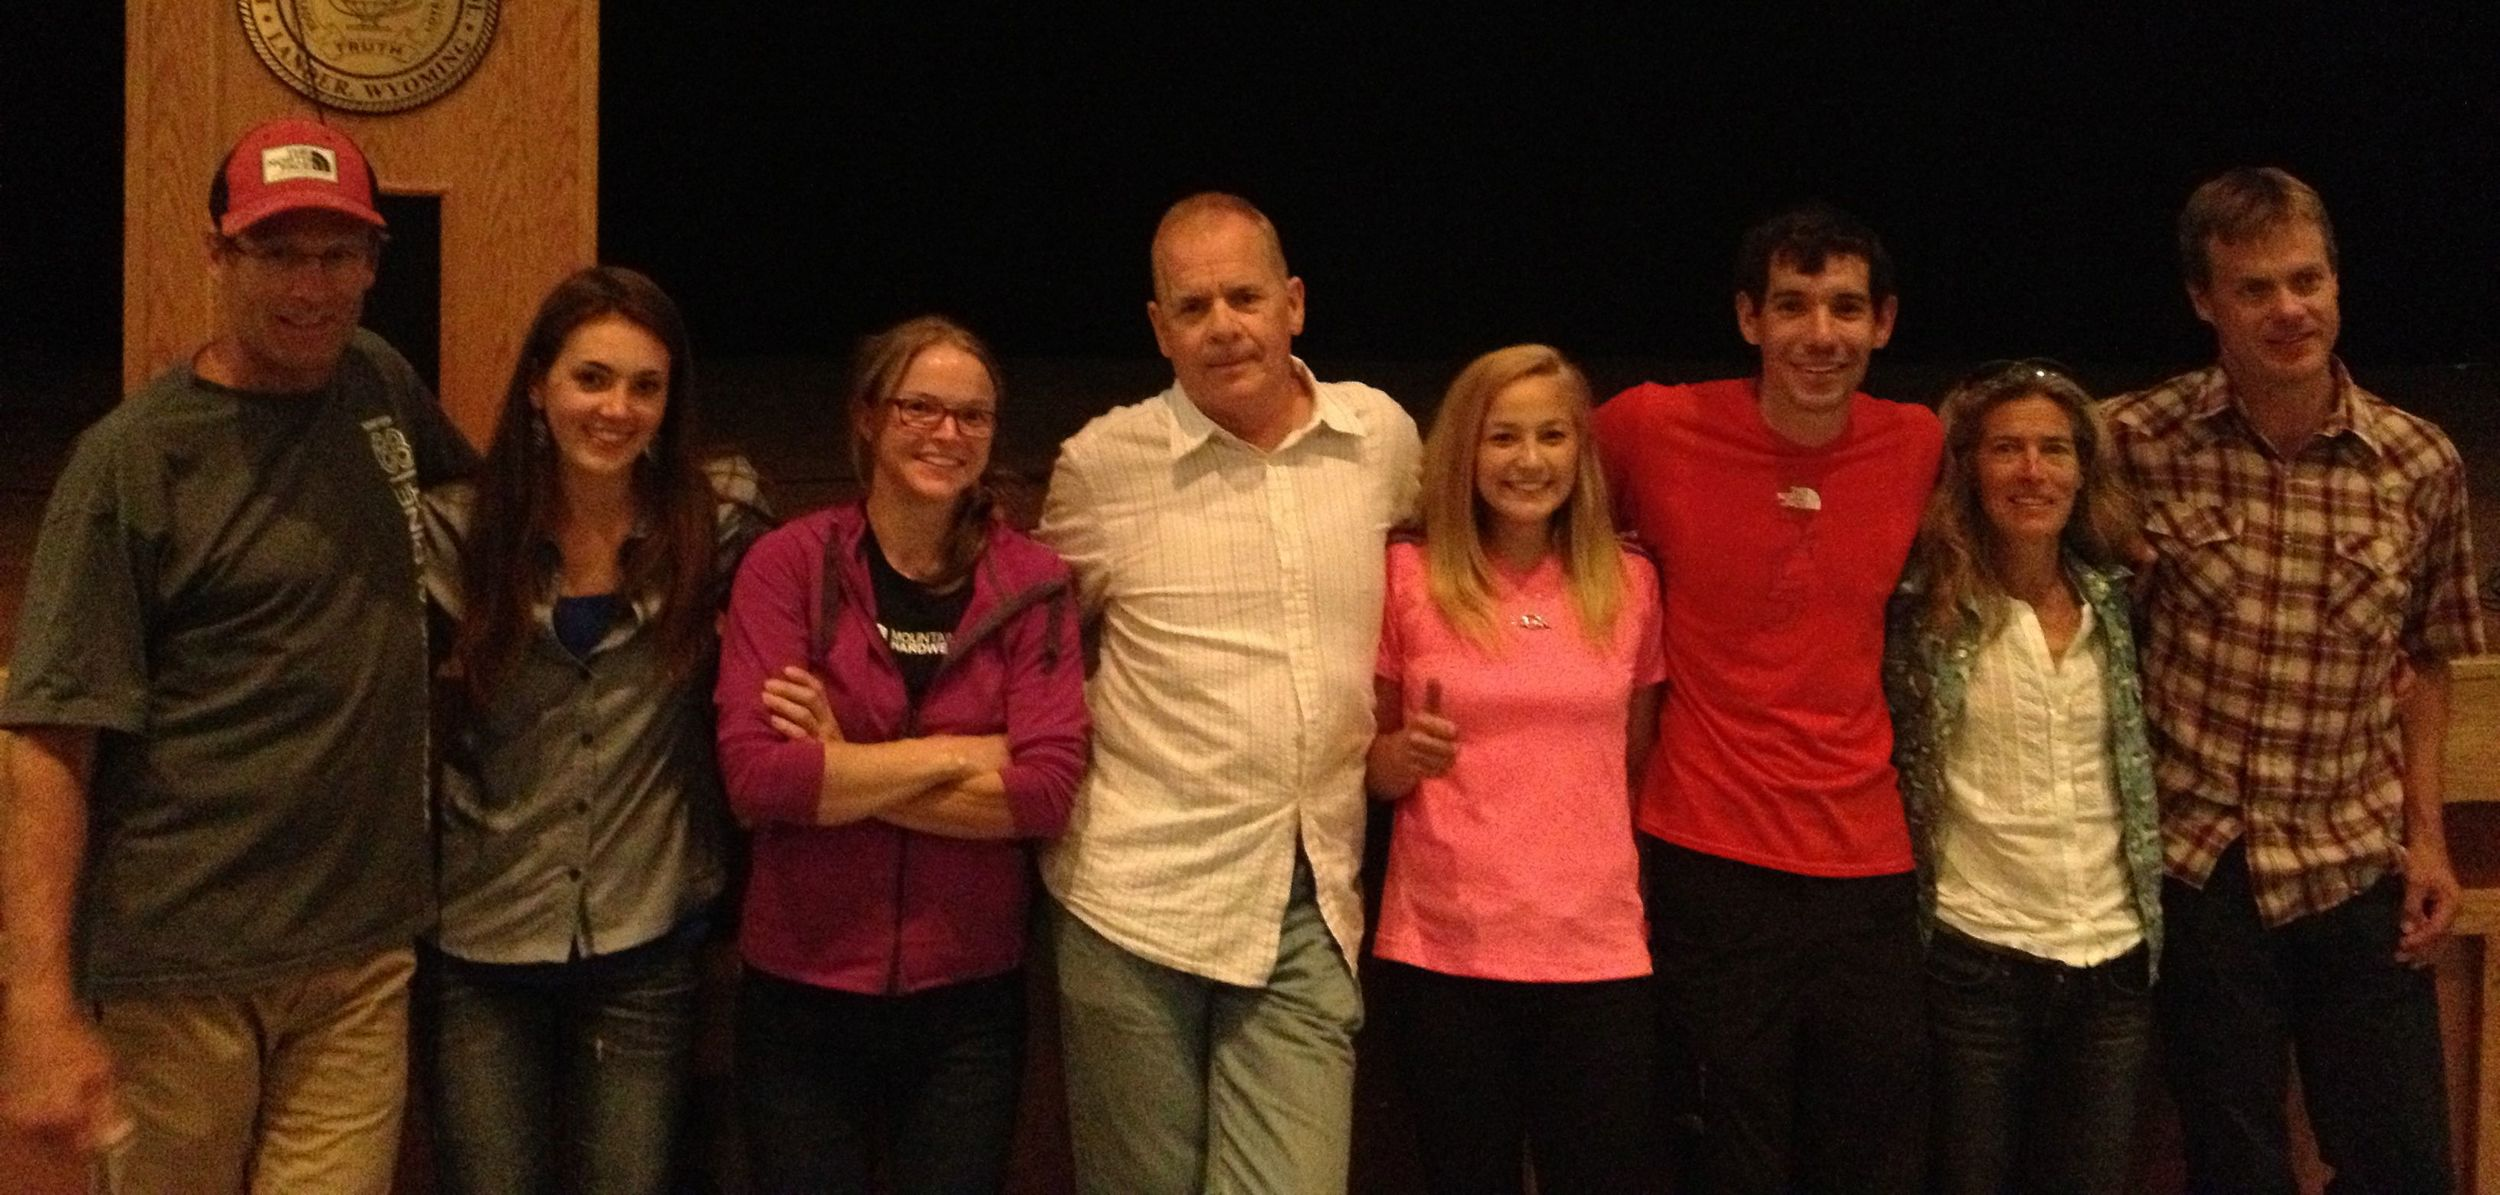 The speakers: Conrad Anker, Paige Claassen, Me, John Long, Sasha DiGiulian, Alex Honnold, Lynn Hill, Brady Robinson